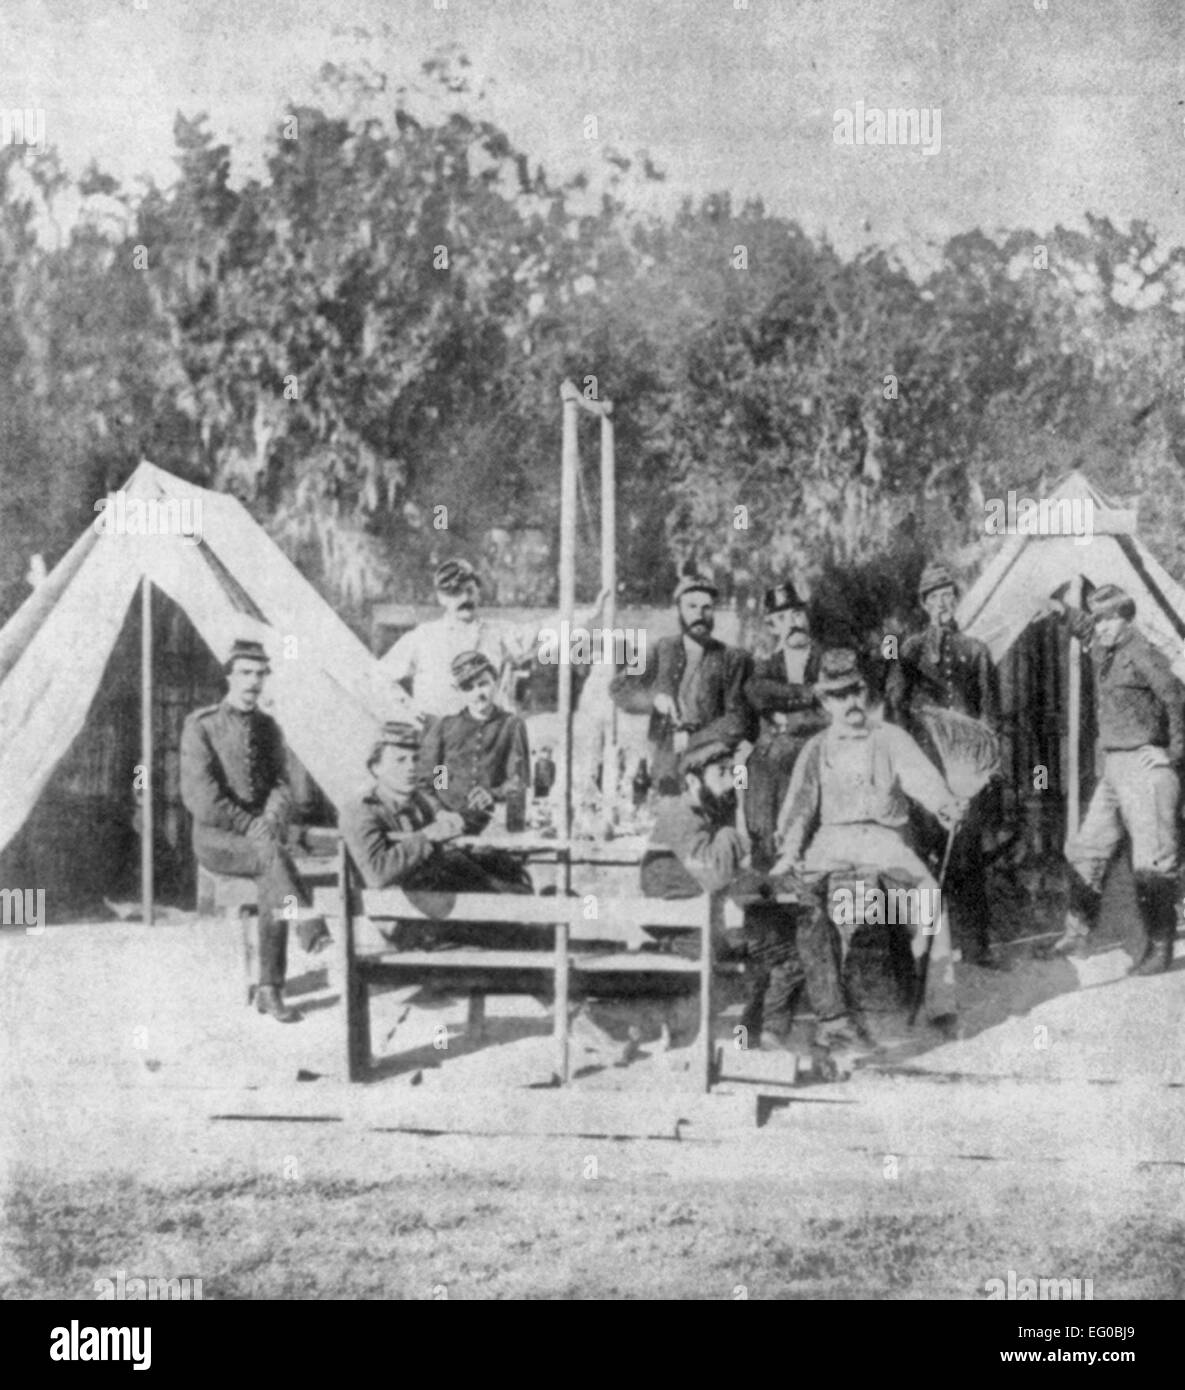 Confederate artillerists, members of the Washington Artillery Regiment of New Orleans, posed in front of tents. Stock Photo